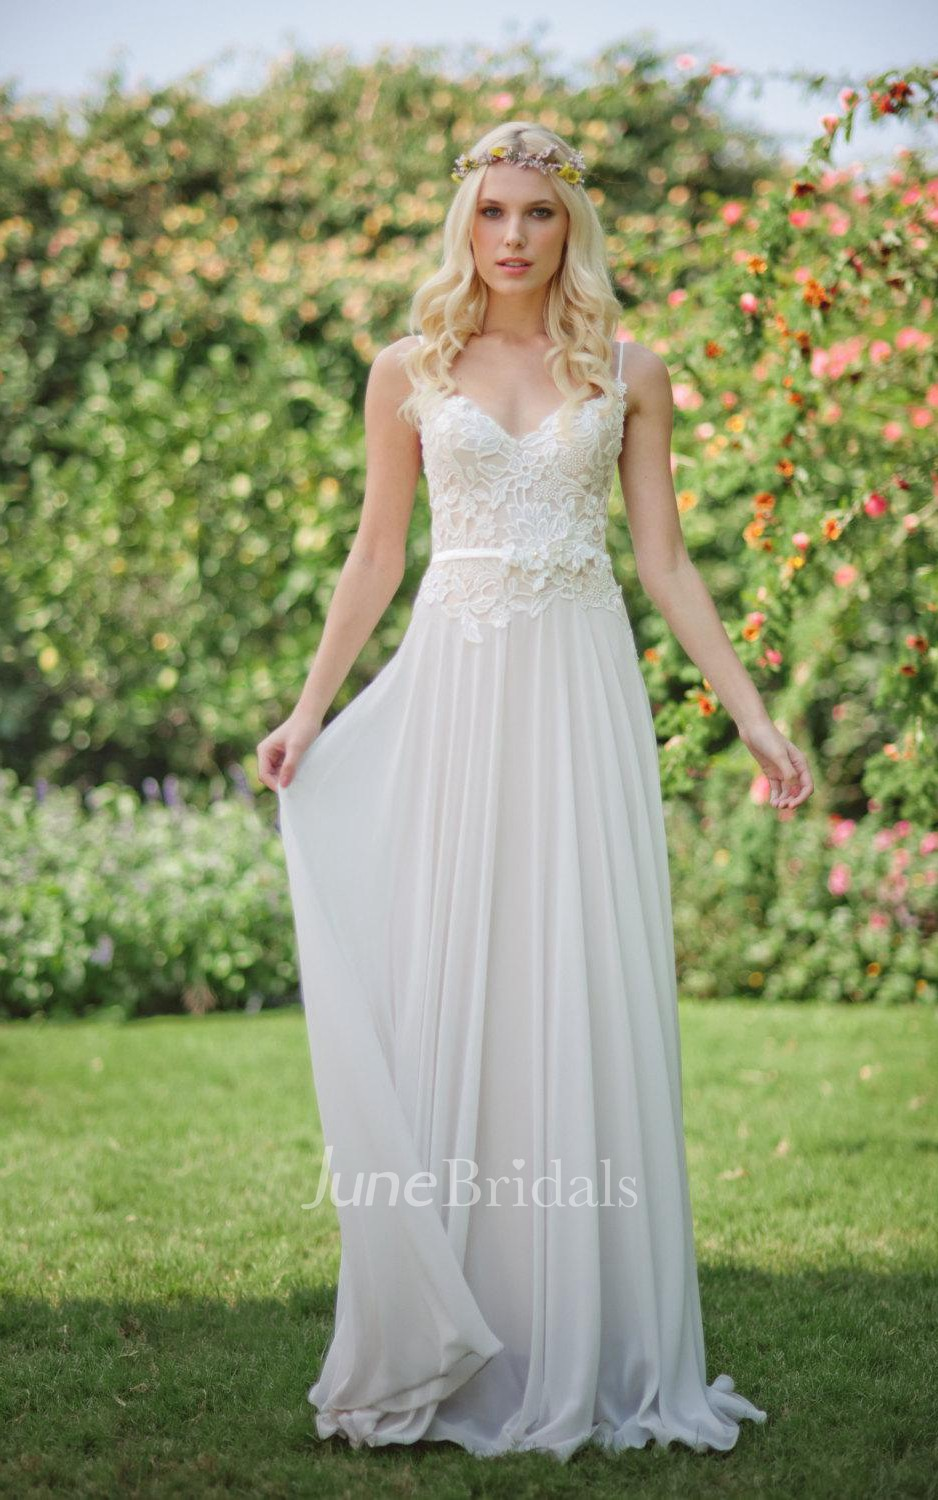 Chiffon Lace Weddig Dress With Beading Flower LaceUp Back